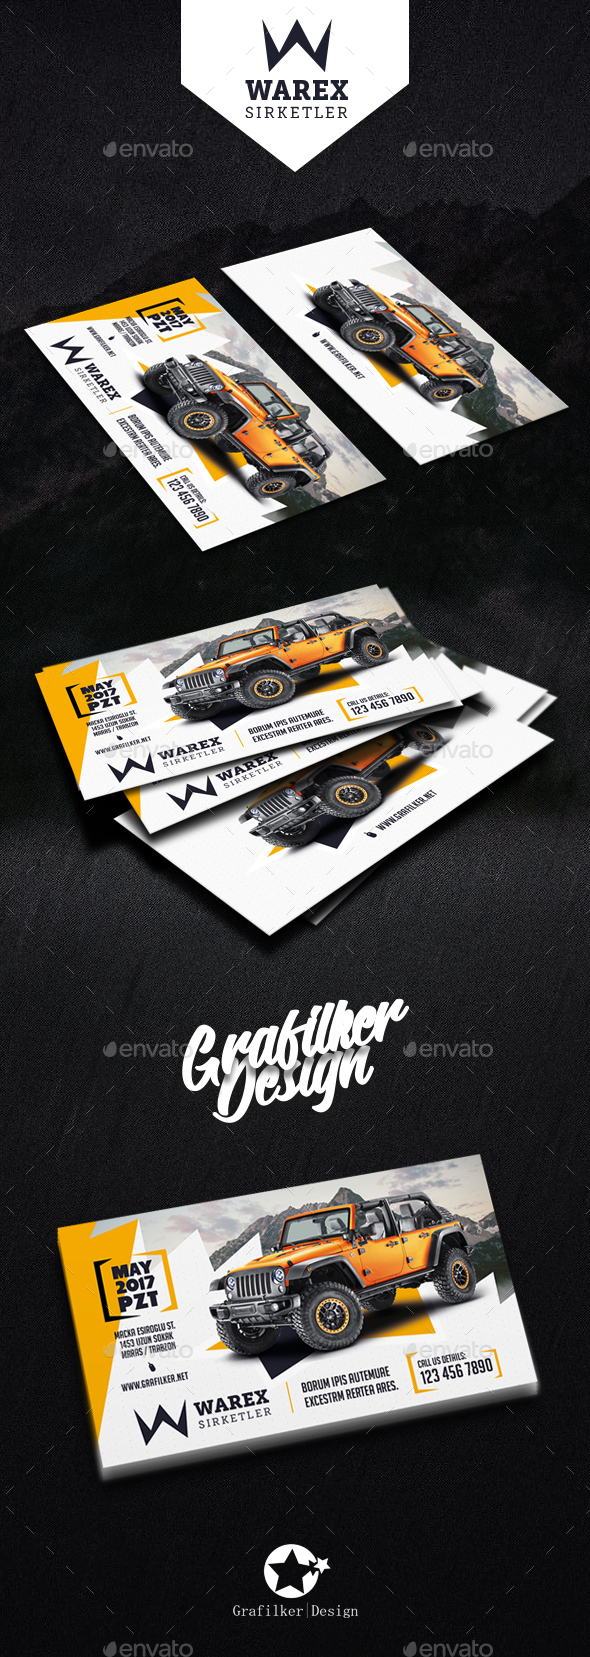 Car Sales Business Card Templates by grafilker | GraphicRiver